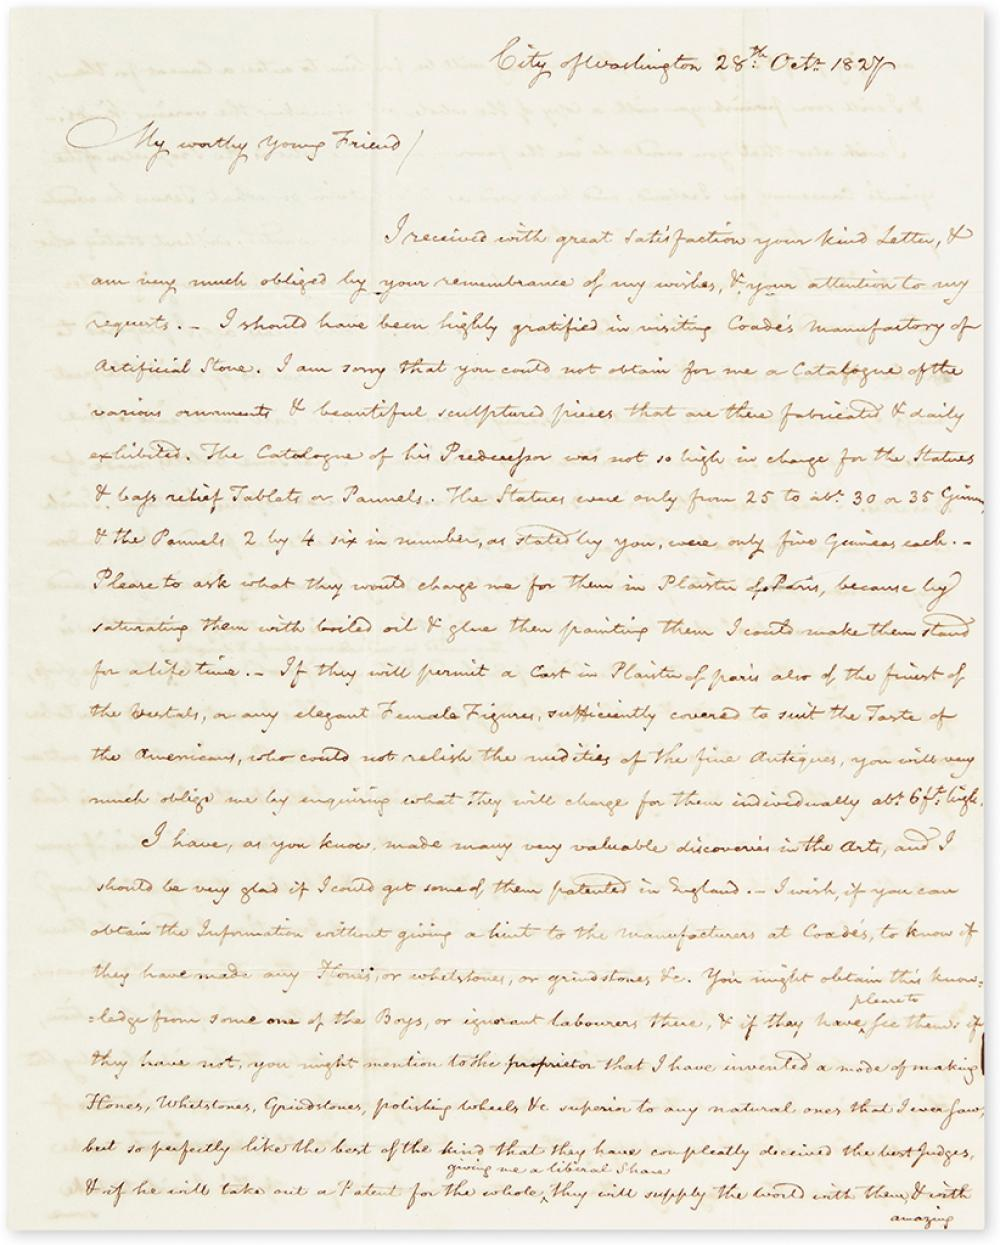 THORNTON, WILLIAM. Autograph Letter Signed, to William P. Elliott (